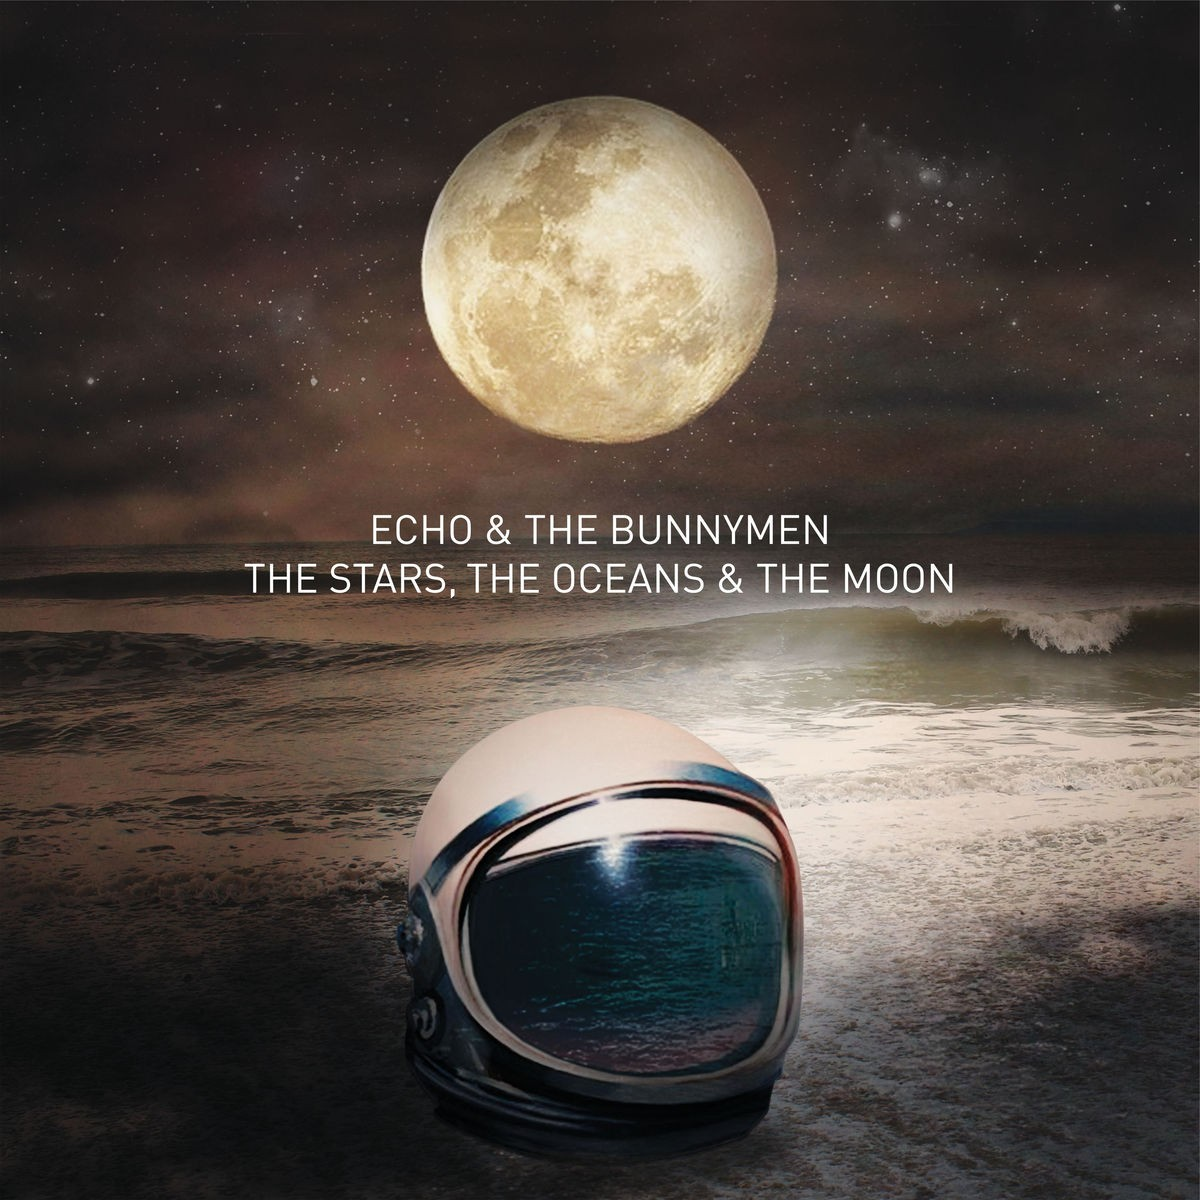 Echo & The Bunnymen - The Stars, The Oceans & the Moon VINYL - 5053835520